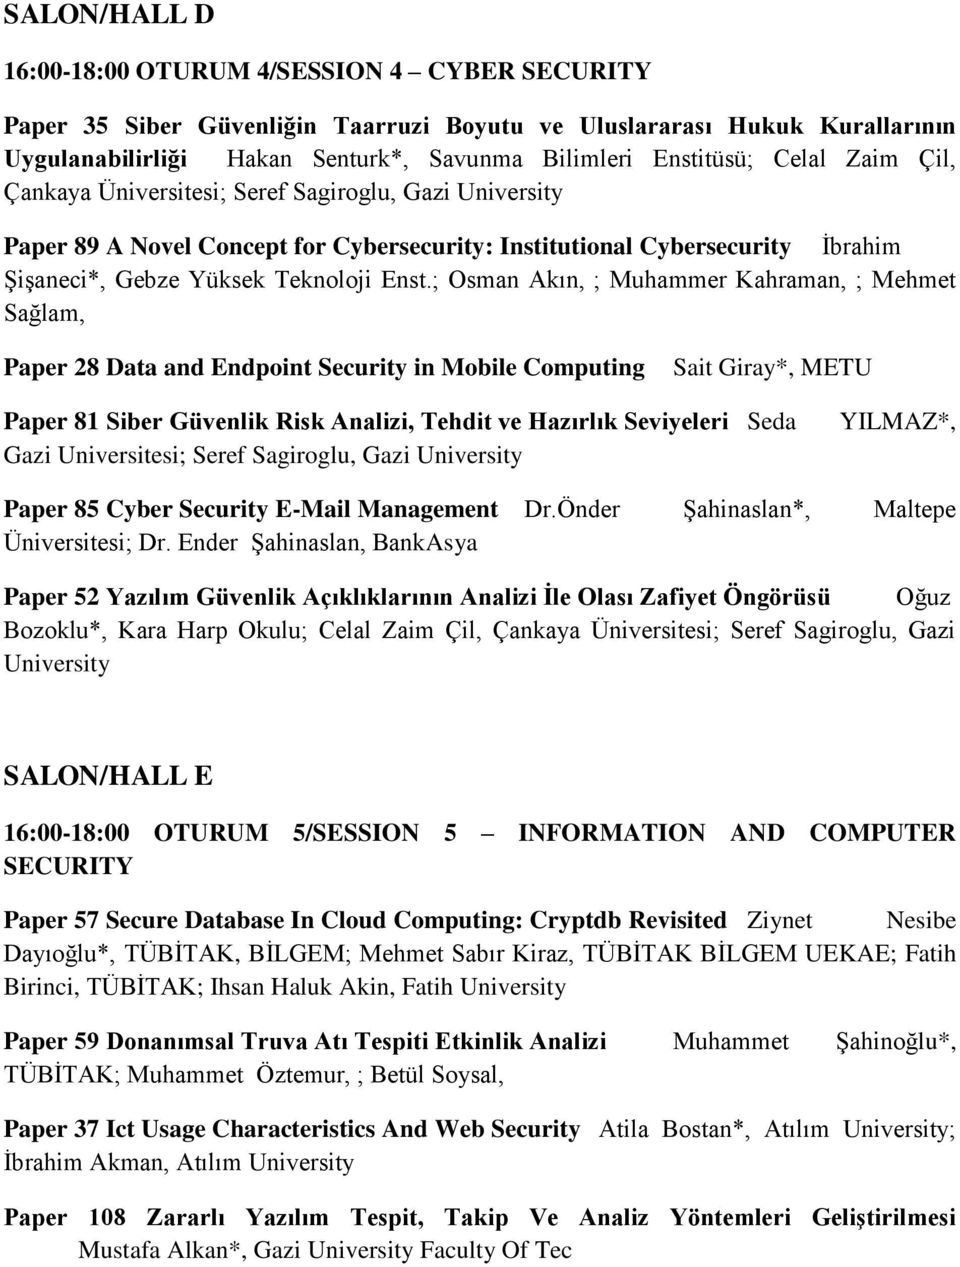 ; Osman Akın, ; Muhammer Kahraman, ; Mehmet Sağlam, Paper 28 Data and Endpoint Security in Mobile Computing Sait Giray*, METU Paper 81 Siber Güvenlik Risk Analizi, Tehdit ve Hazırlık Seviyeleri Seda